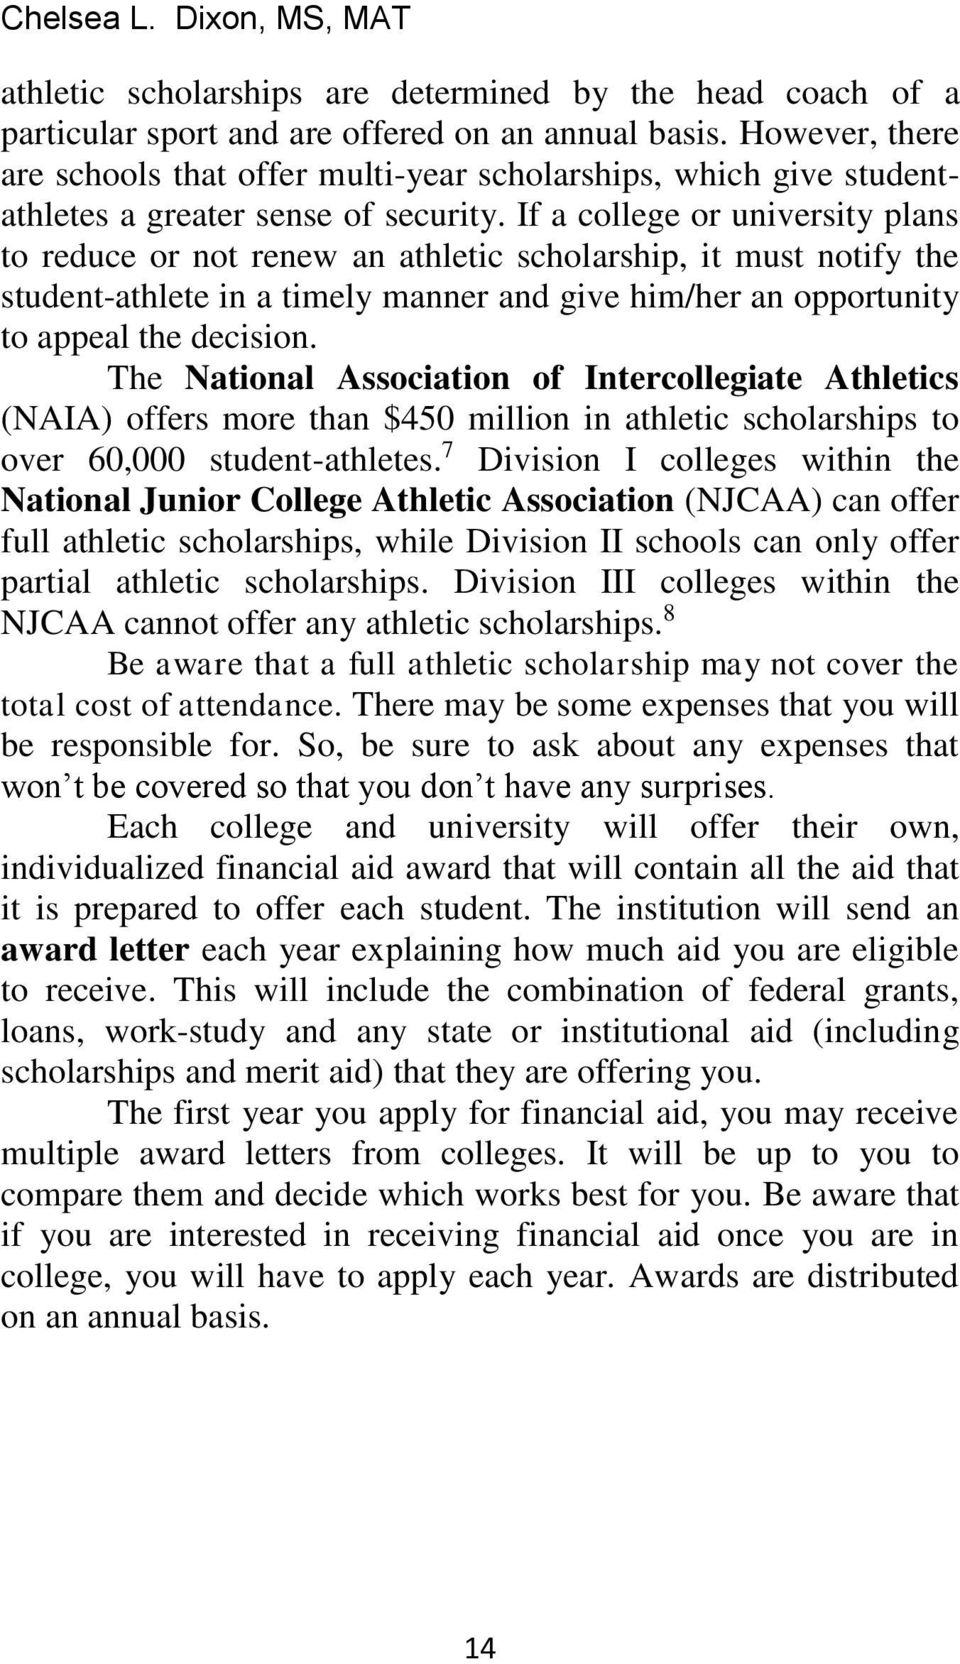 If a college or university plans to reduce or not renew an athletic scholarship, it must notify the student-athlete in a timely manner and give him/her an opportunity to appeal the decision.